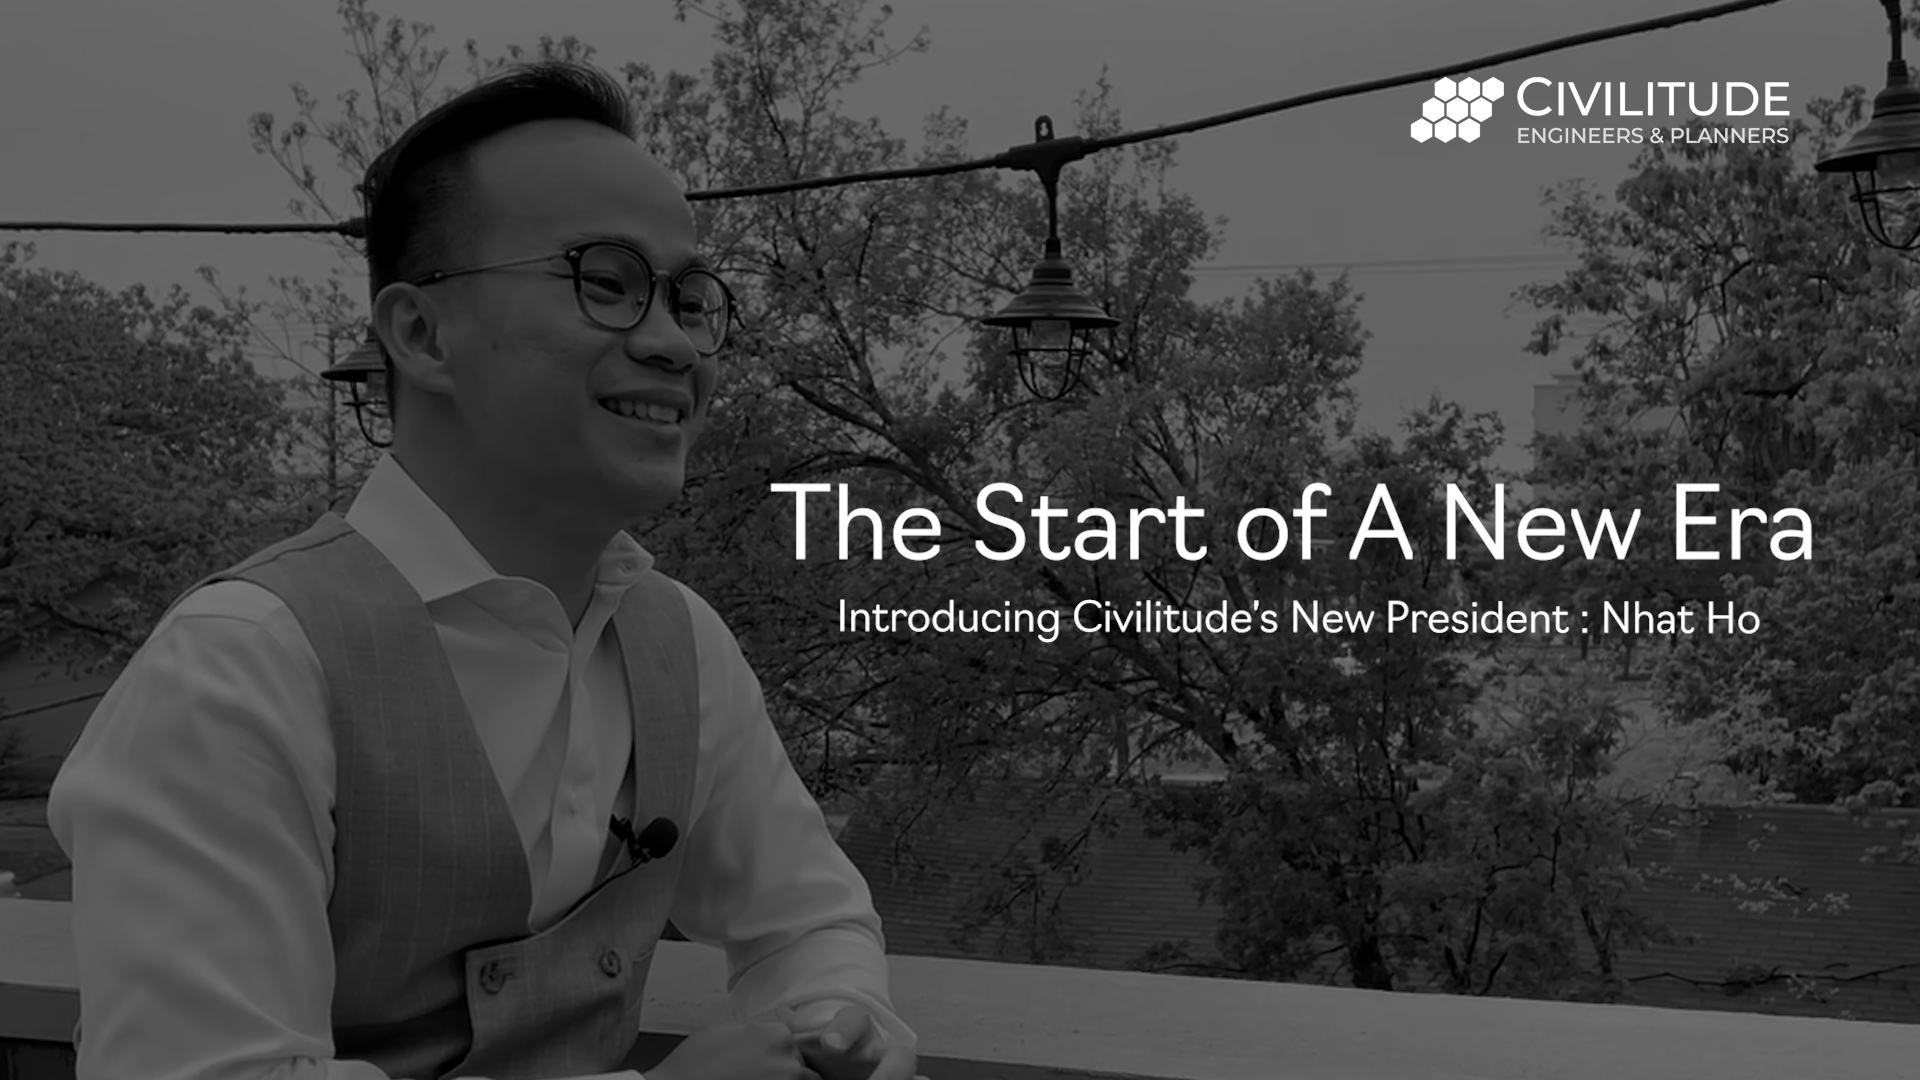 Introducing Civilitude's New President: Nhat Ho